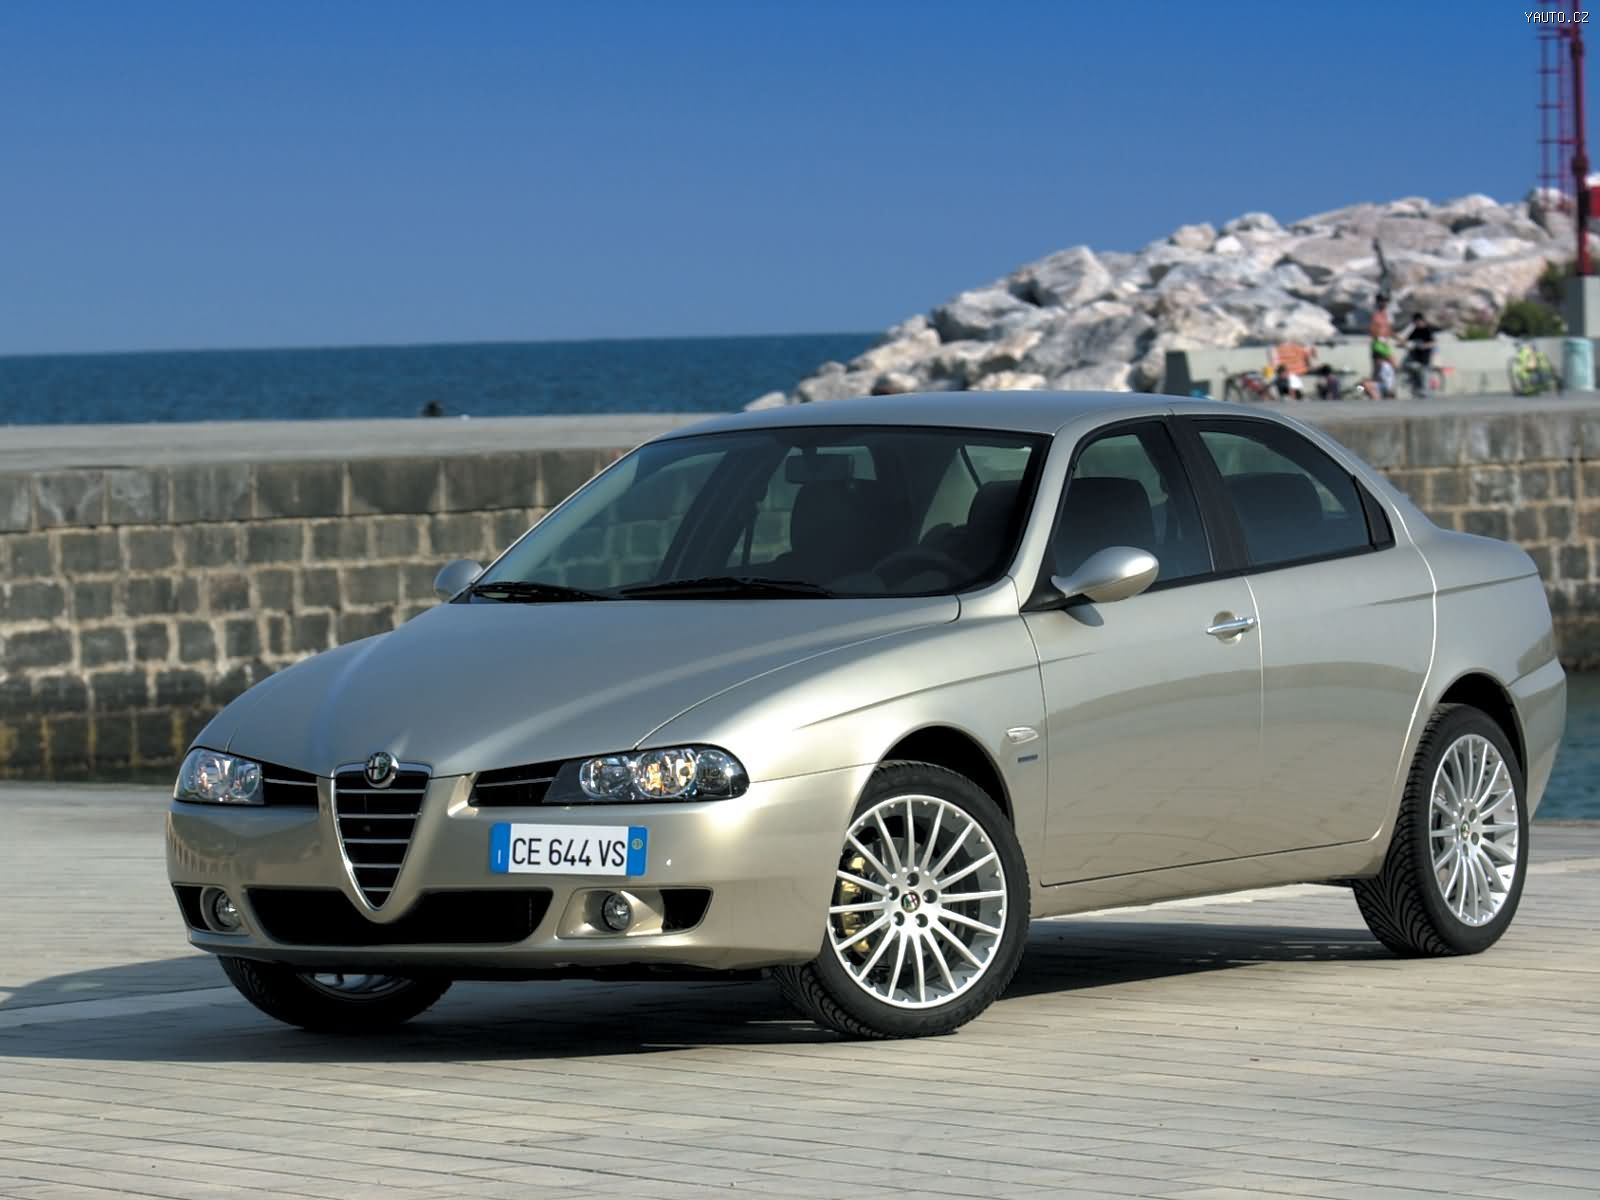 Alfa-Romeo 156 photo 07